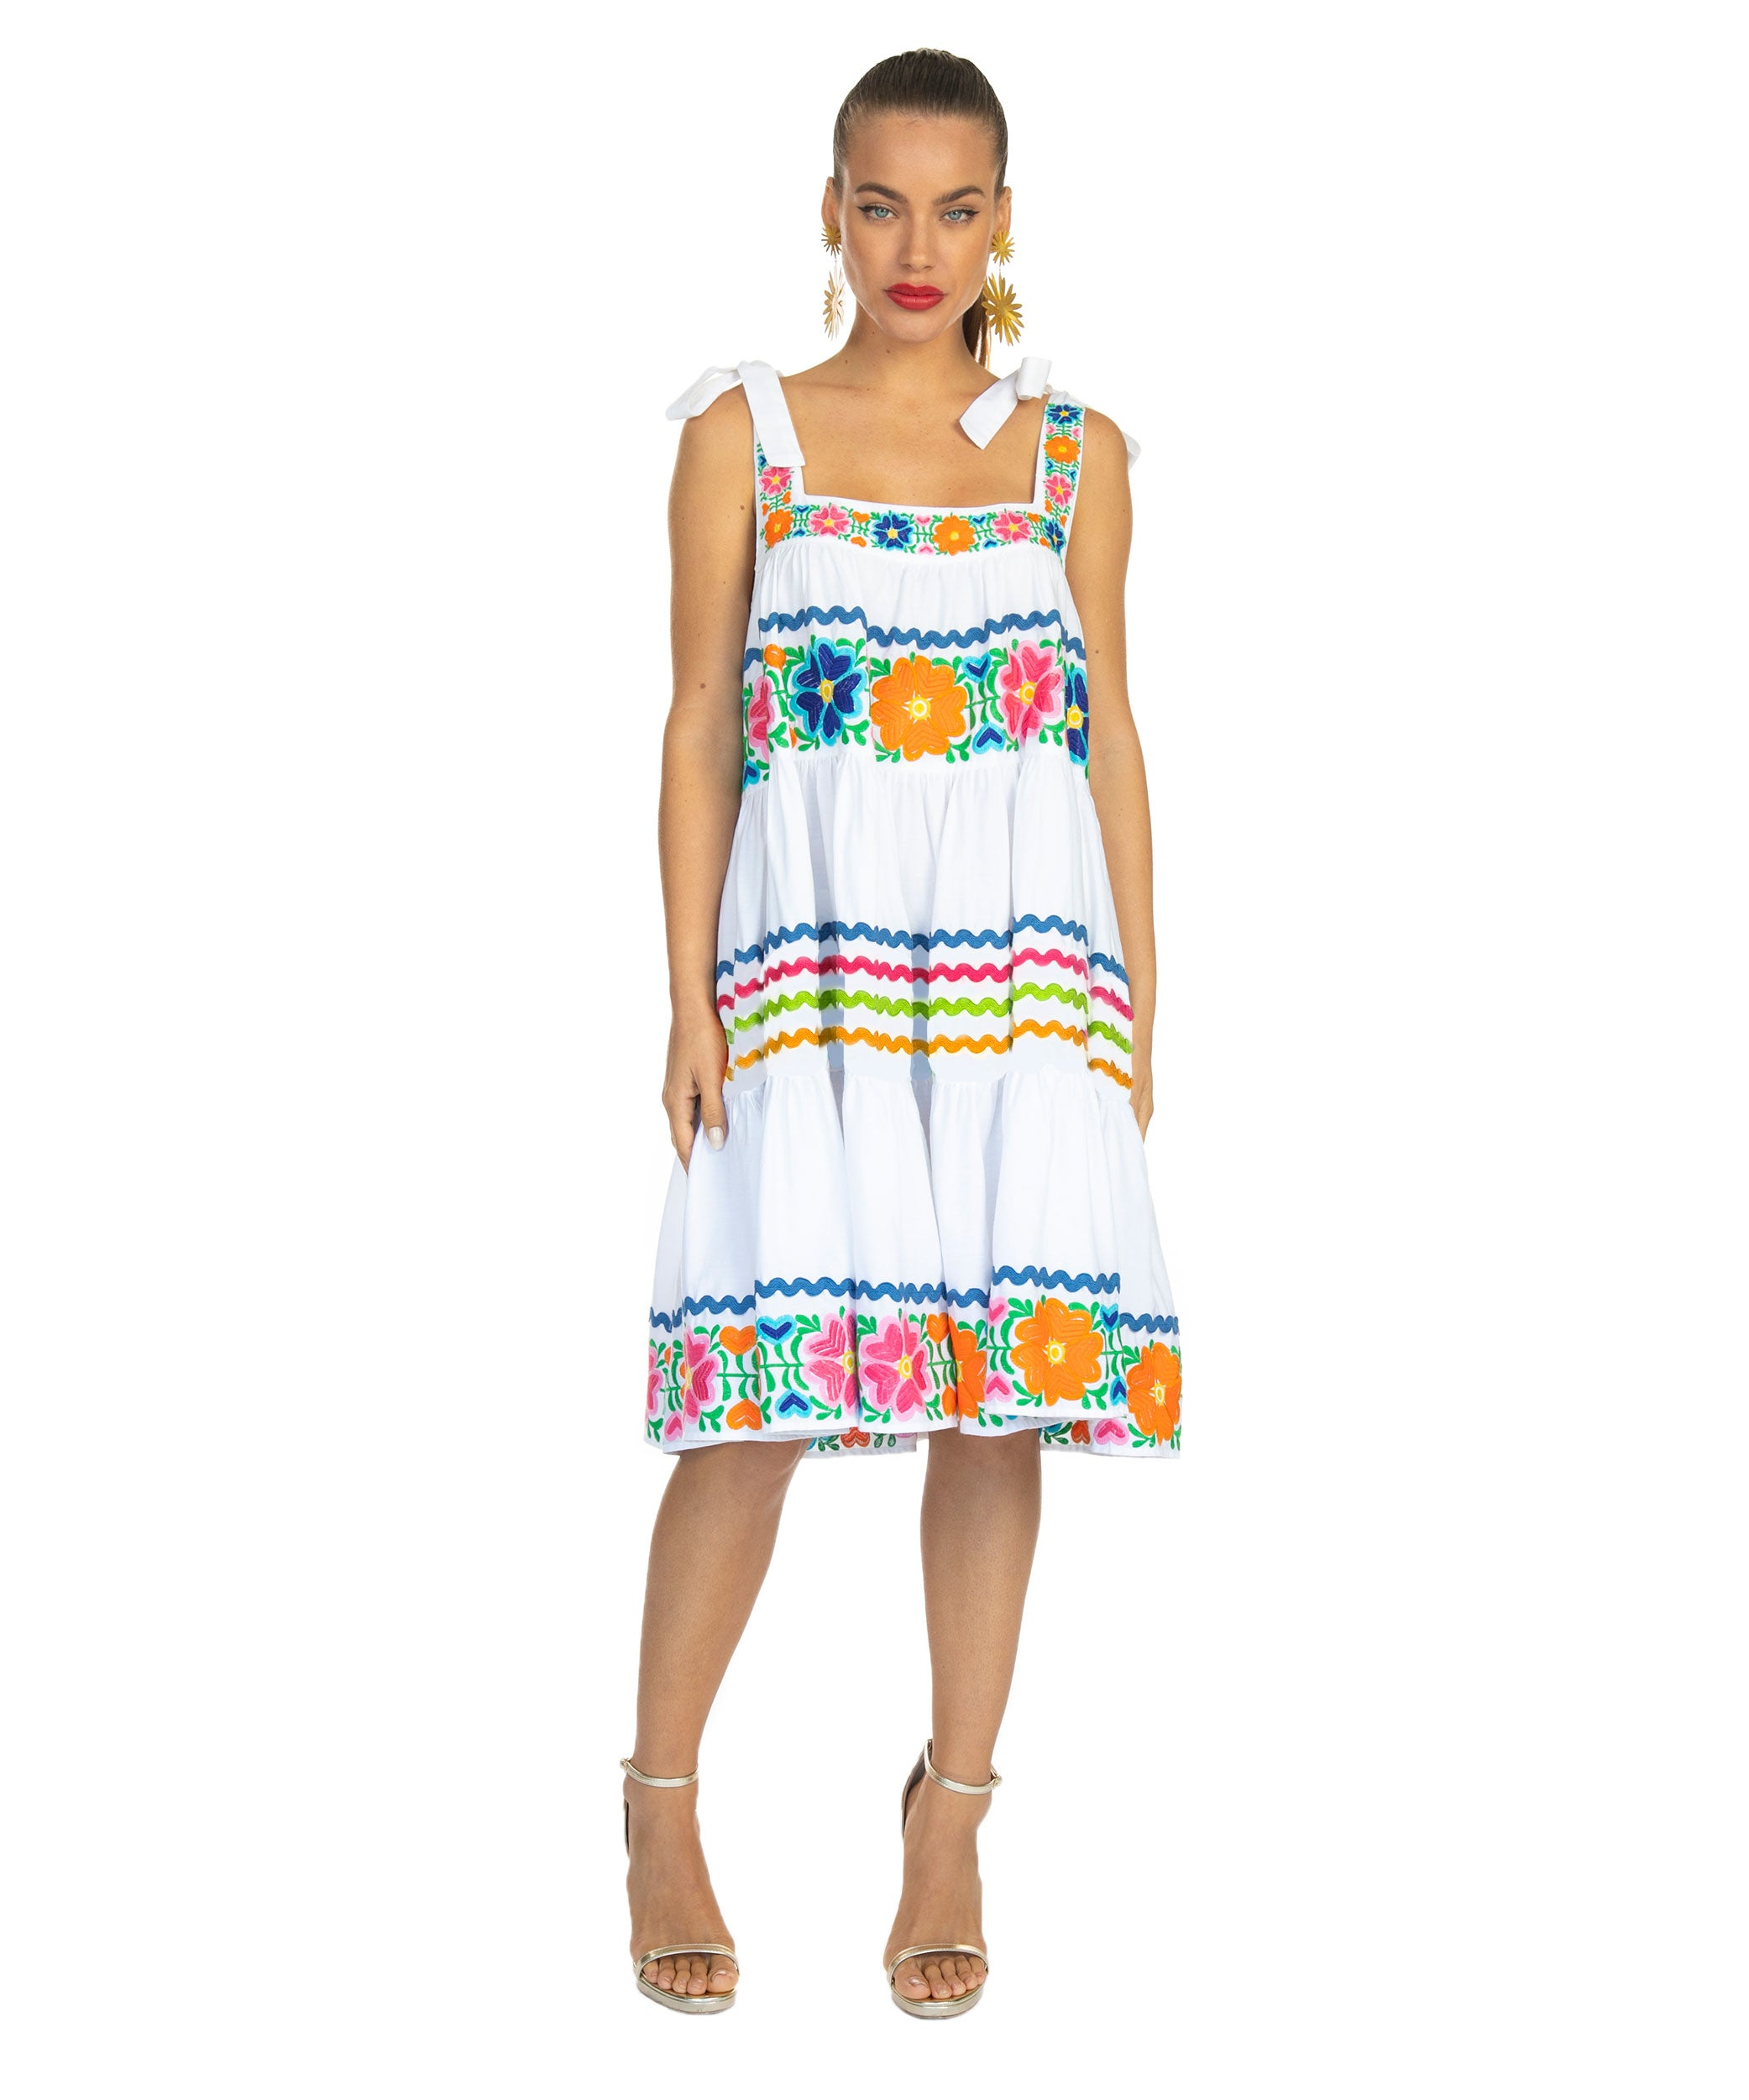 The Obispo Swing Dress by Bonita Collective